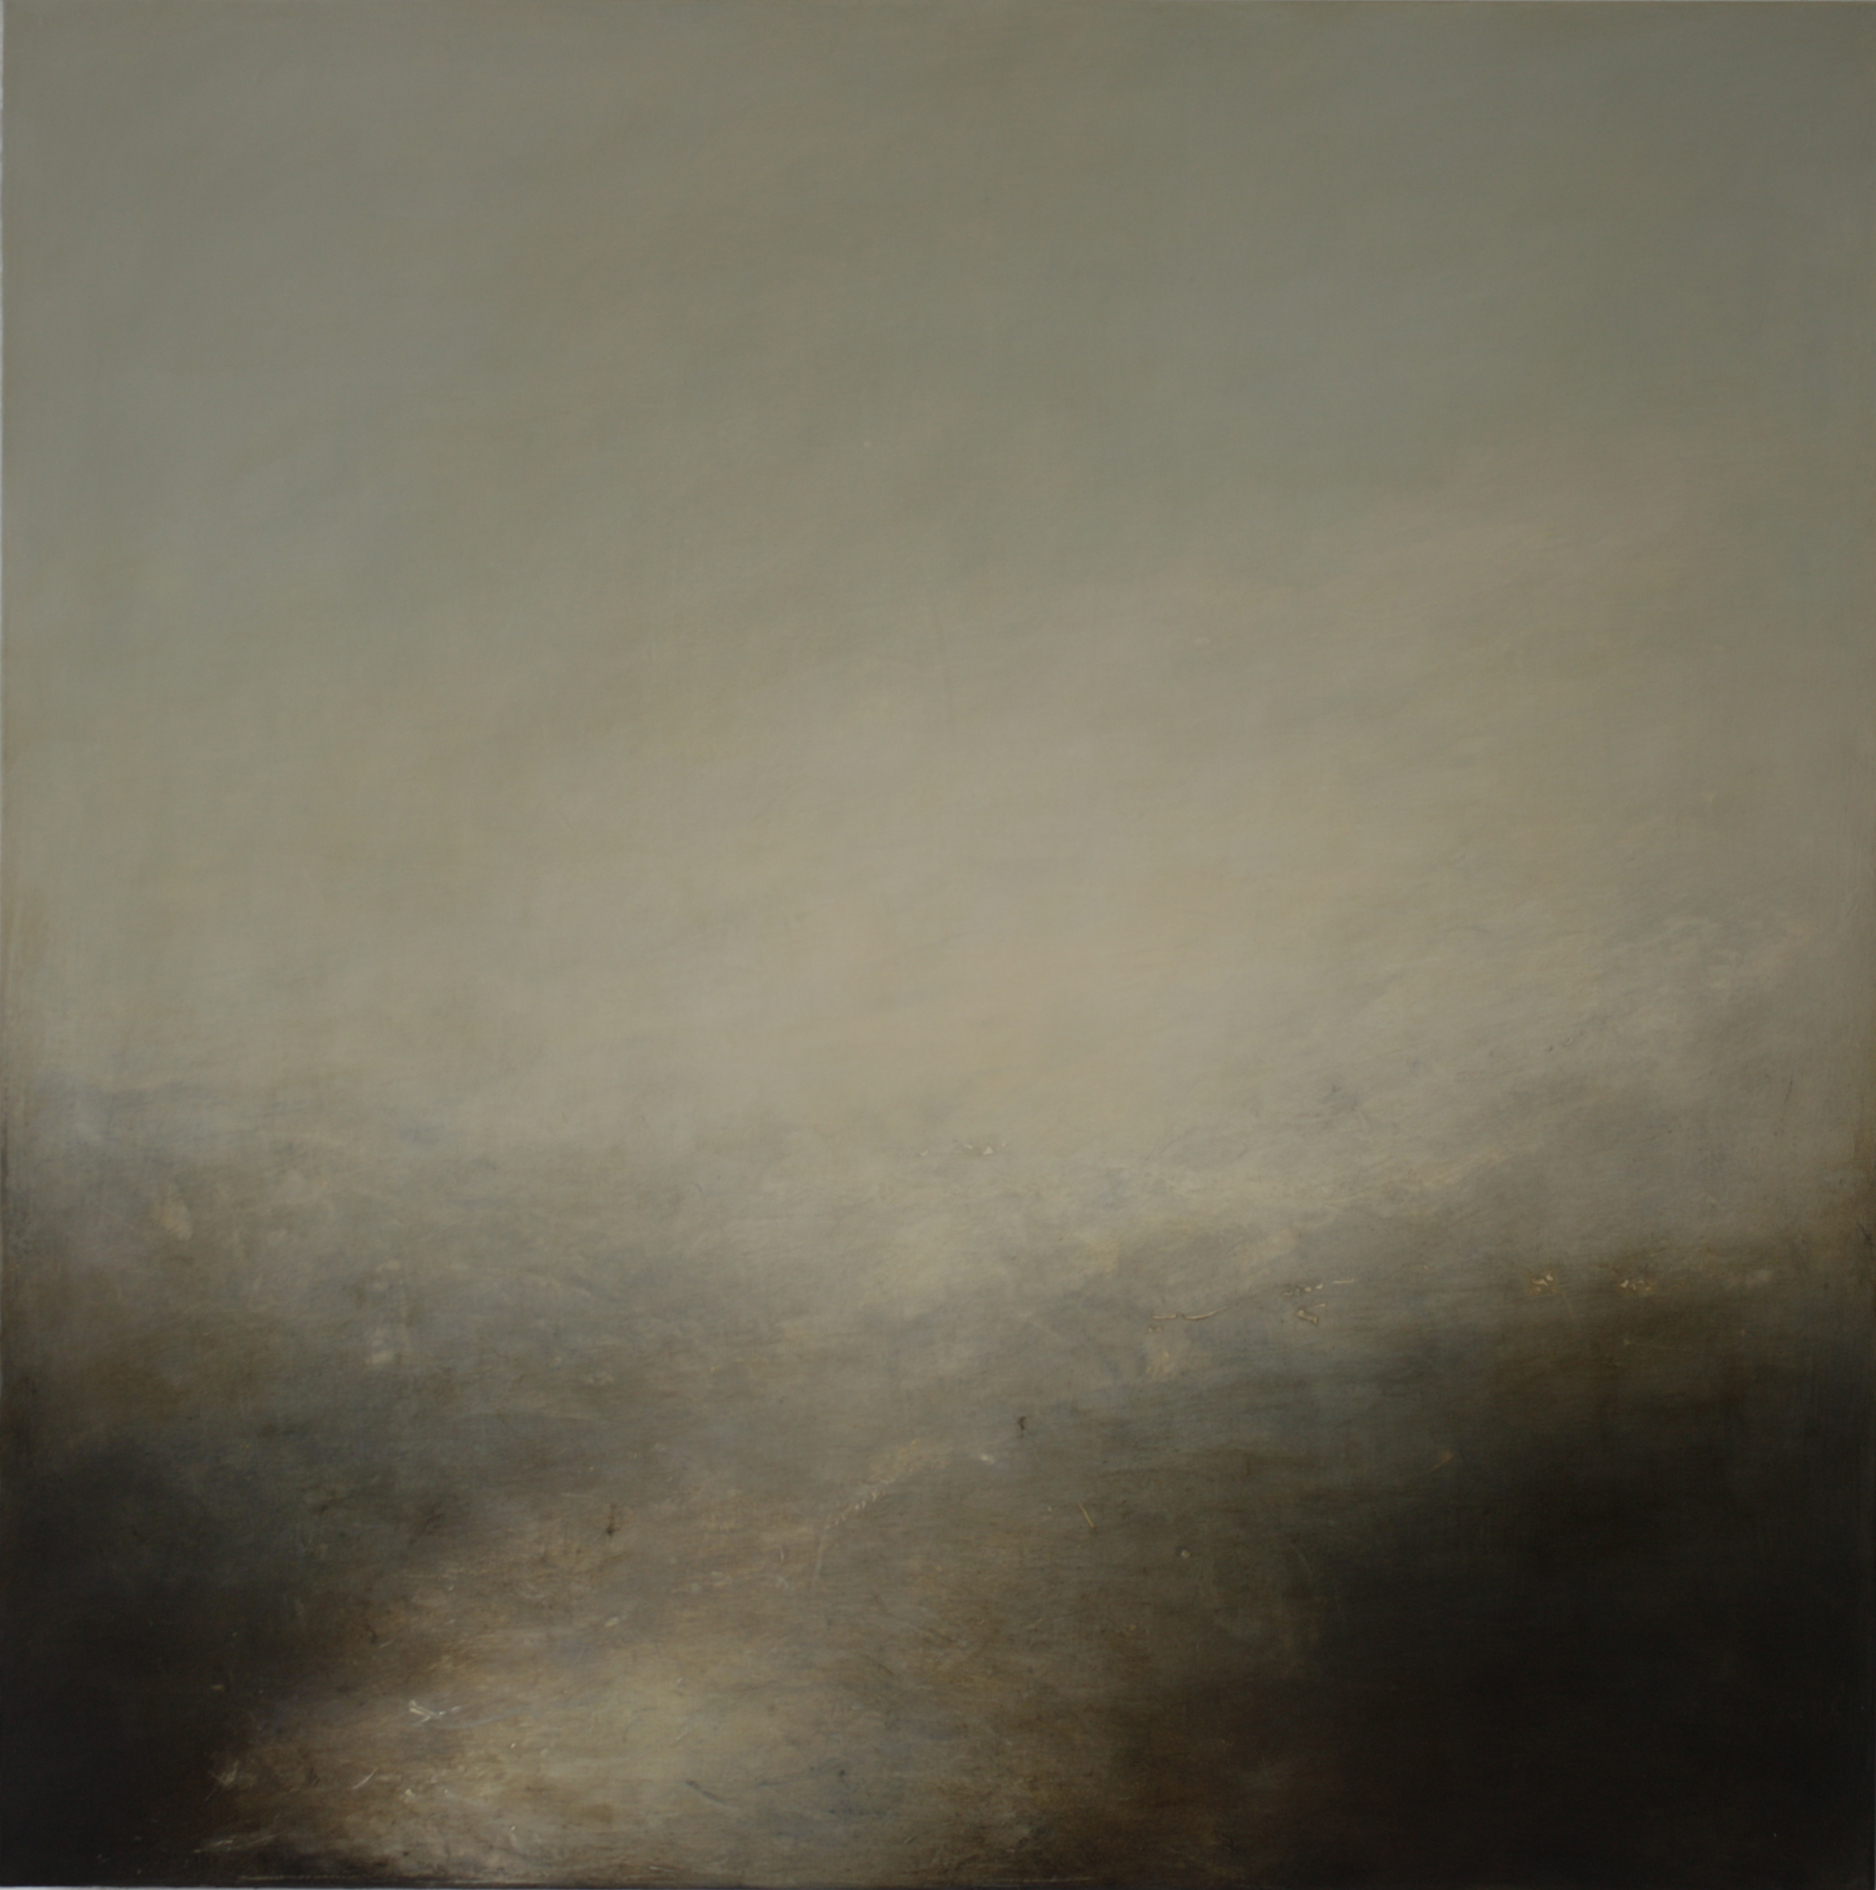 Artist: Victoria Graimes  Title: Meander II  Size: 100 x 100 cm  Medium: Oil on canvas  Price: £2500   Buy Now